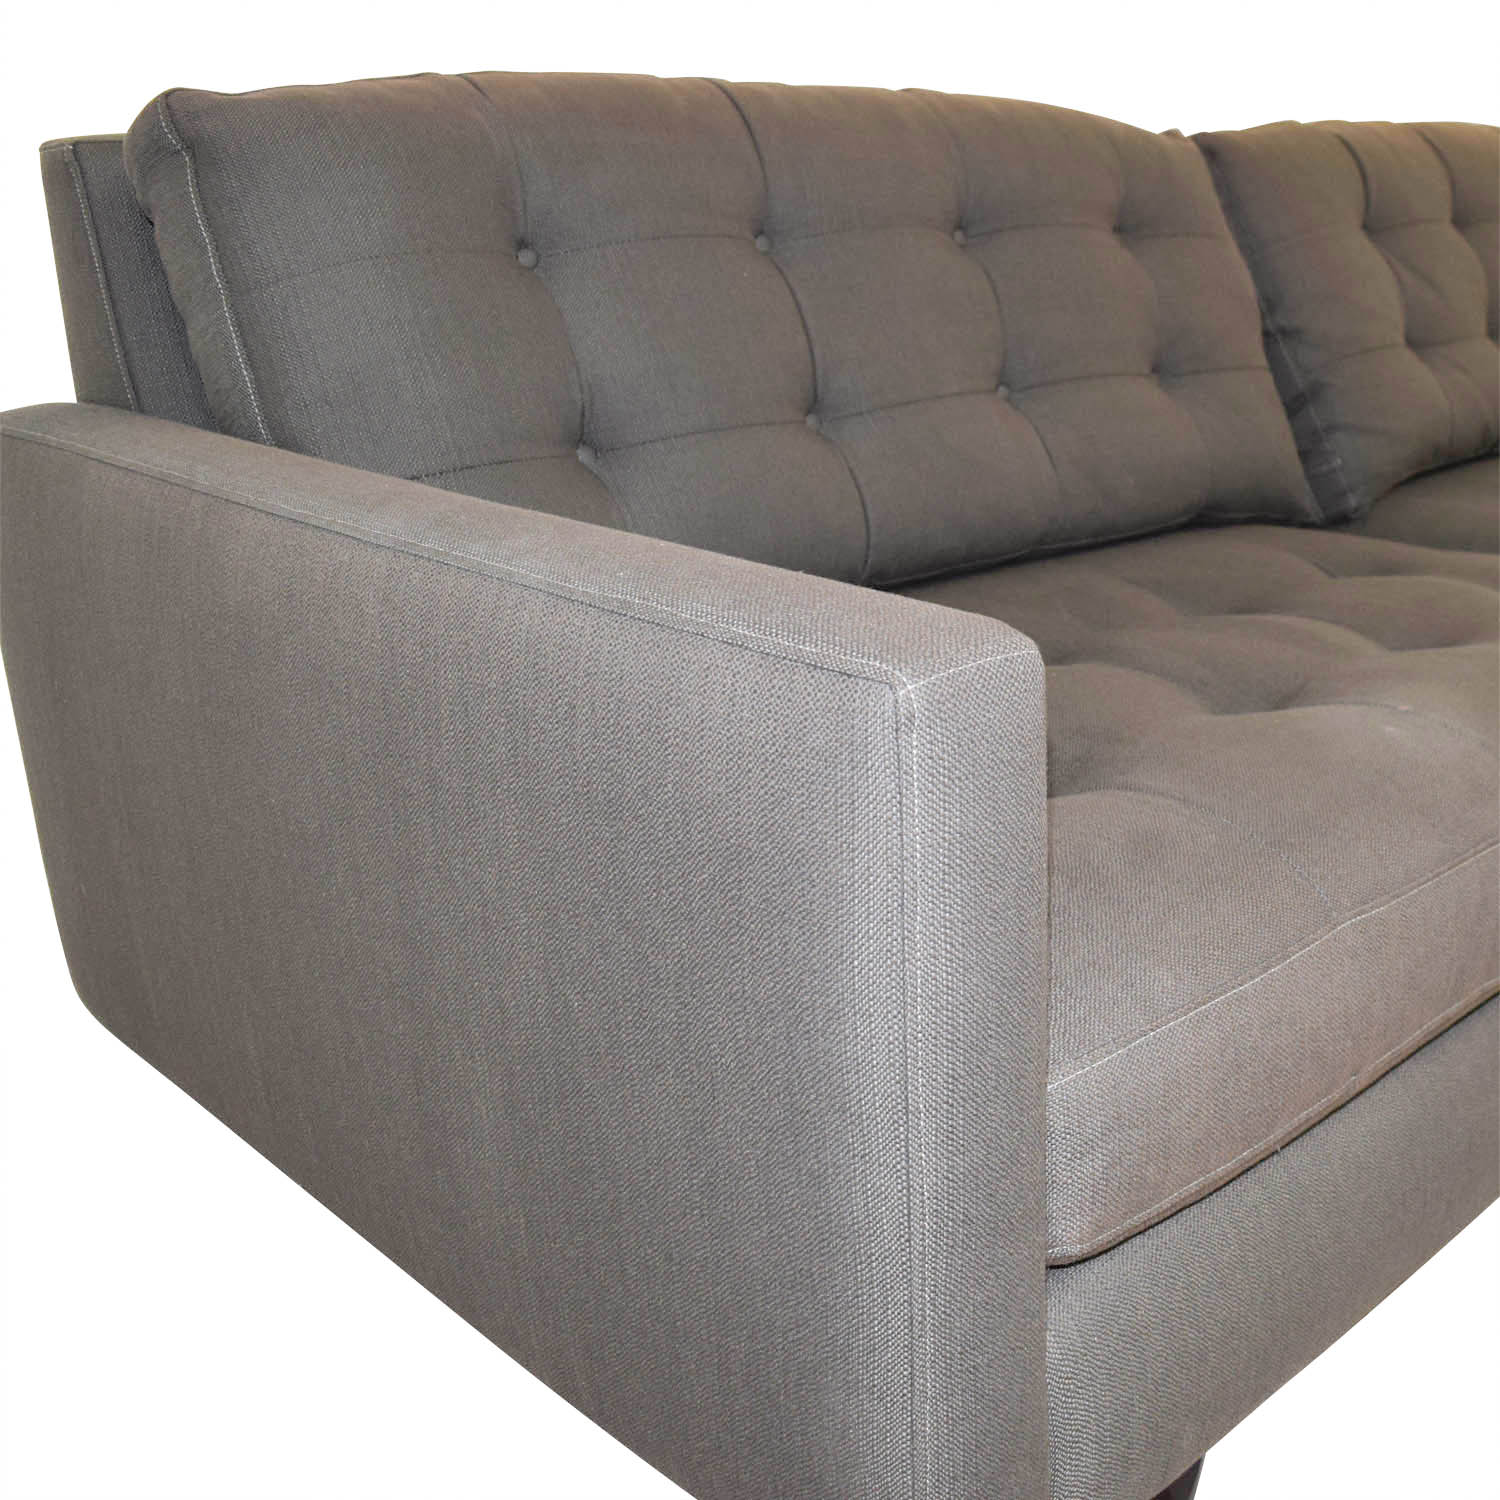 Strange 56 Off Crate Barrel Crate Barrel Mid Century Petrie Grey Tufted Sofa Sofas Pabps2019 Chair Design Images Pabps2019Com